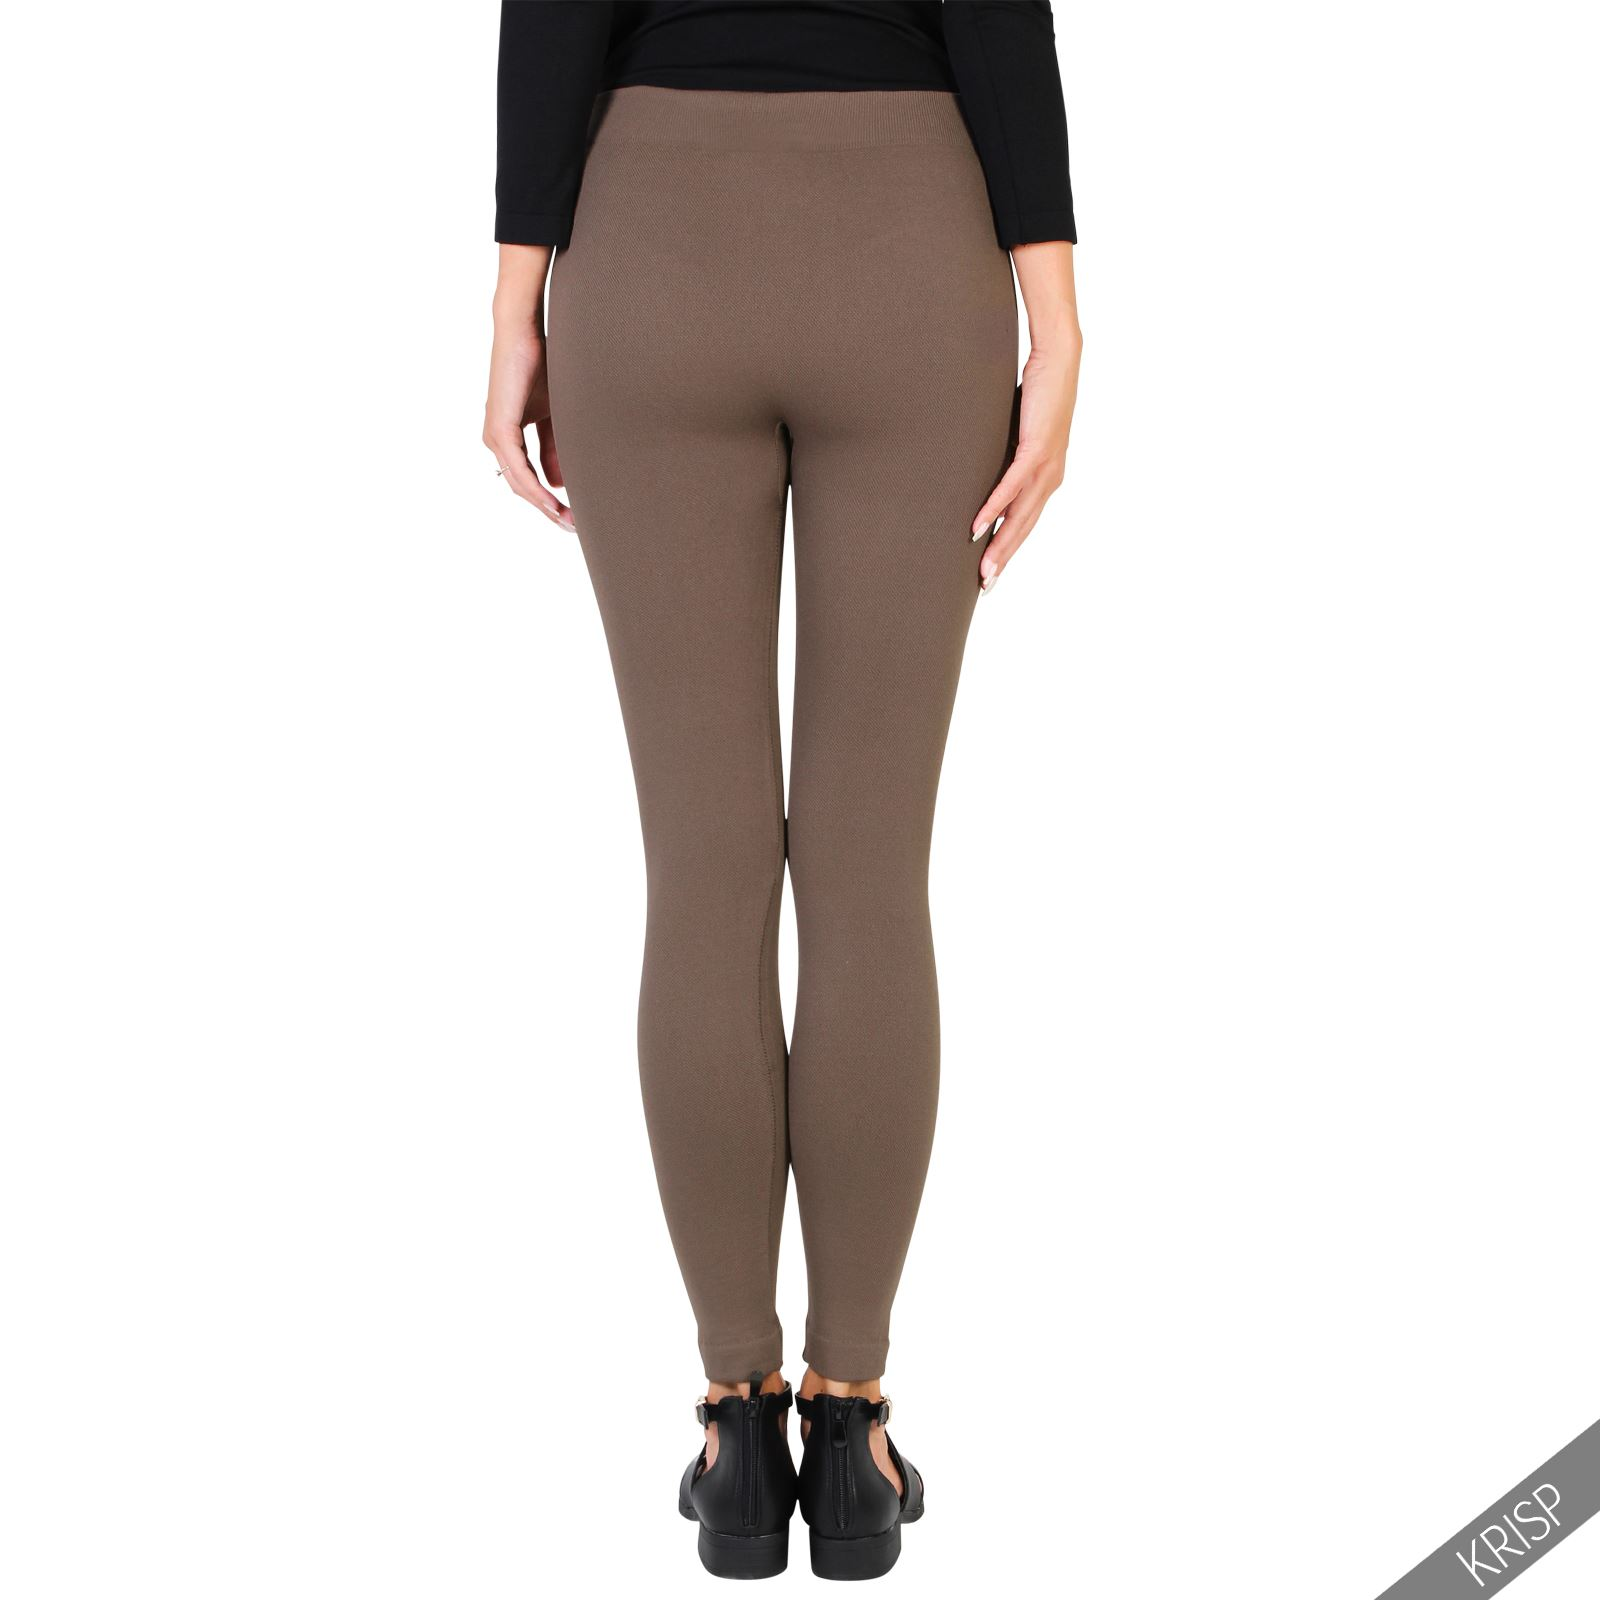 Women's clothes at Gap offer fashion-forward looks and easy style. Shop our women's ,+ followers on Twitter.